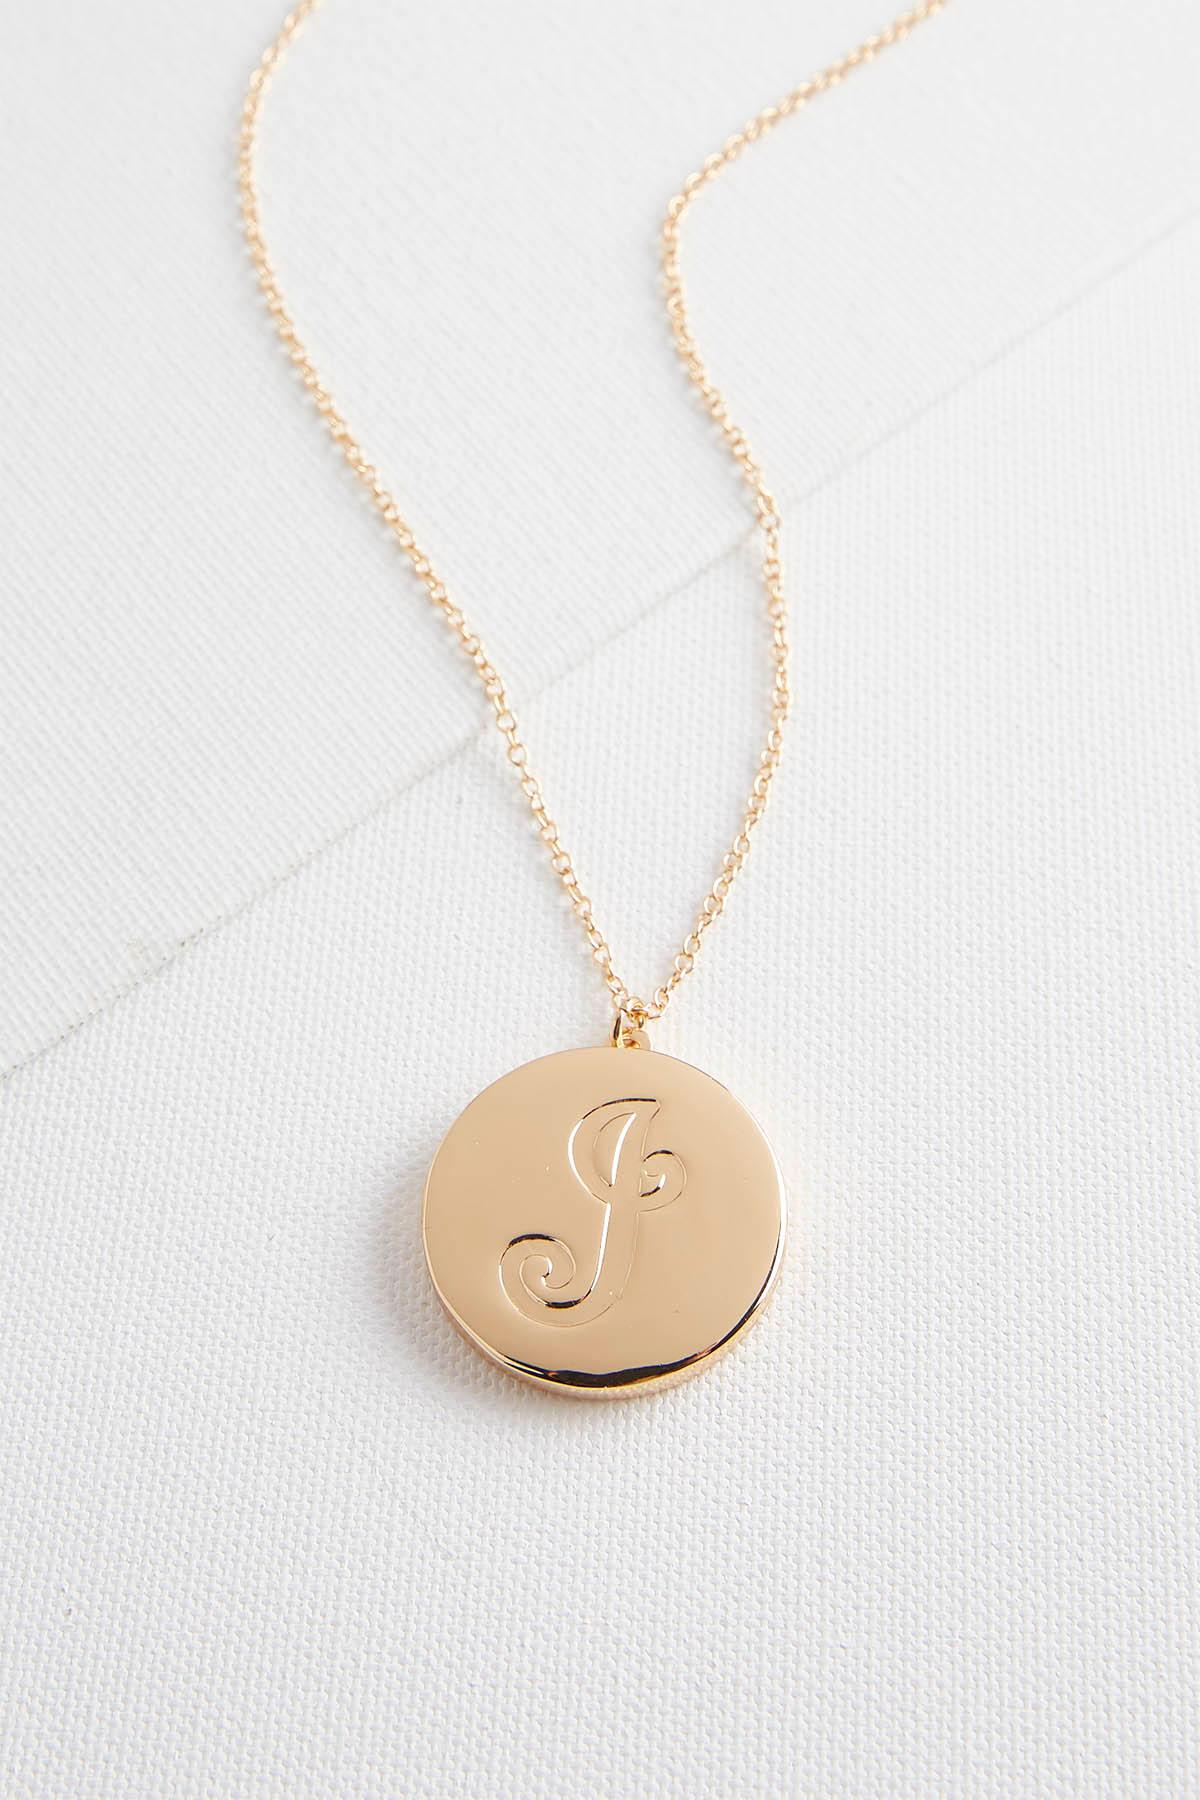 J Monogram Locket Pendant Necklace